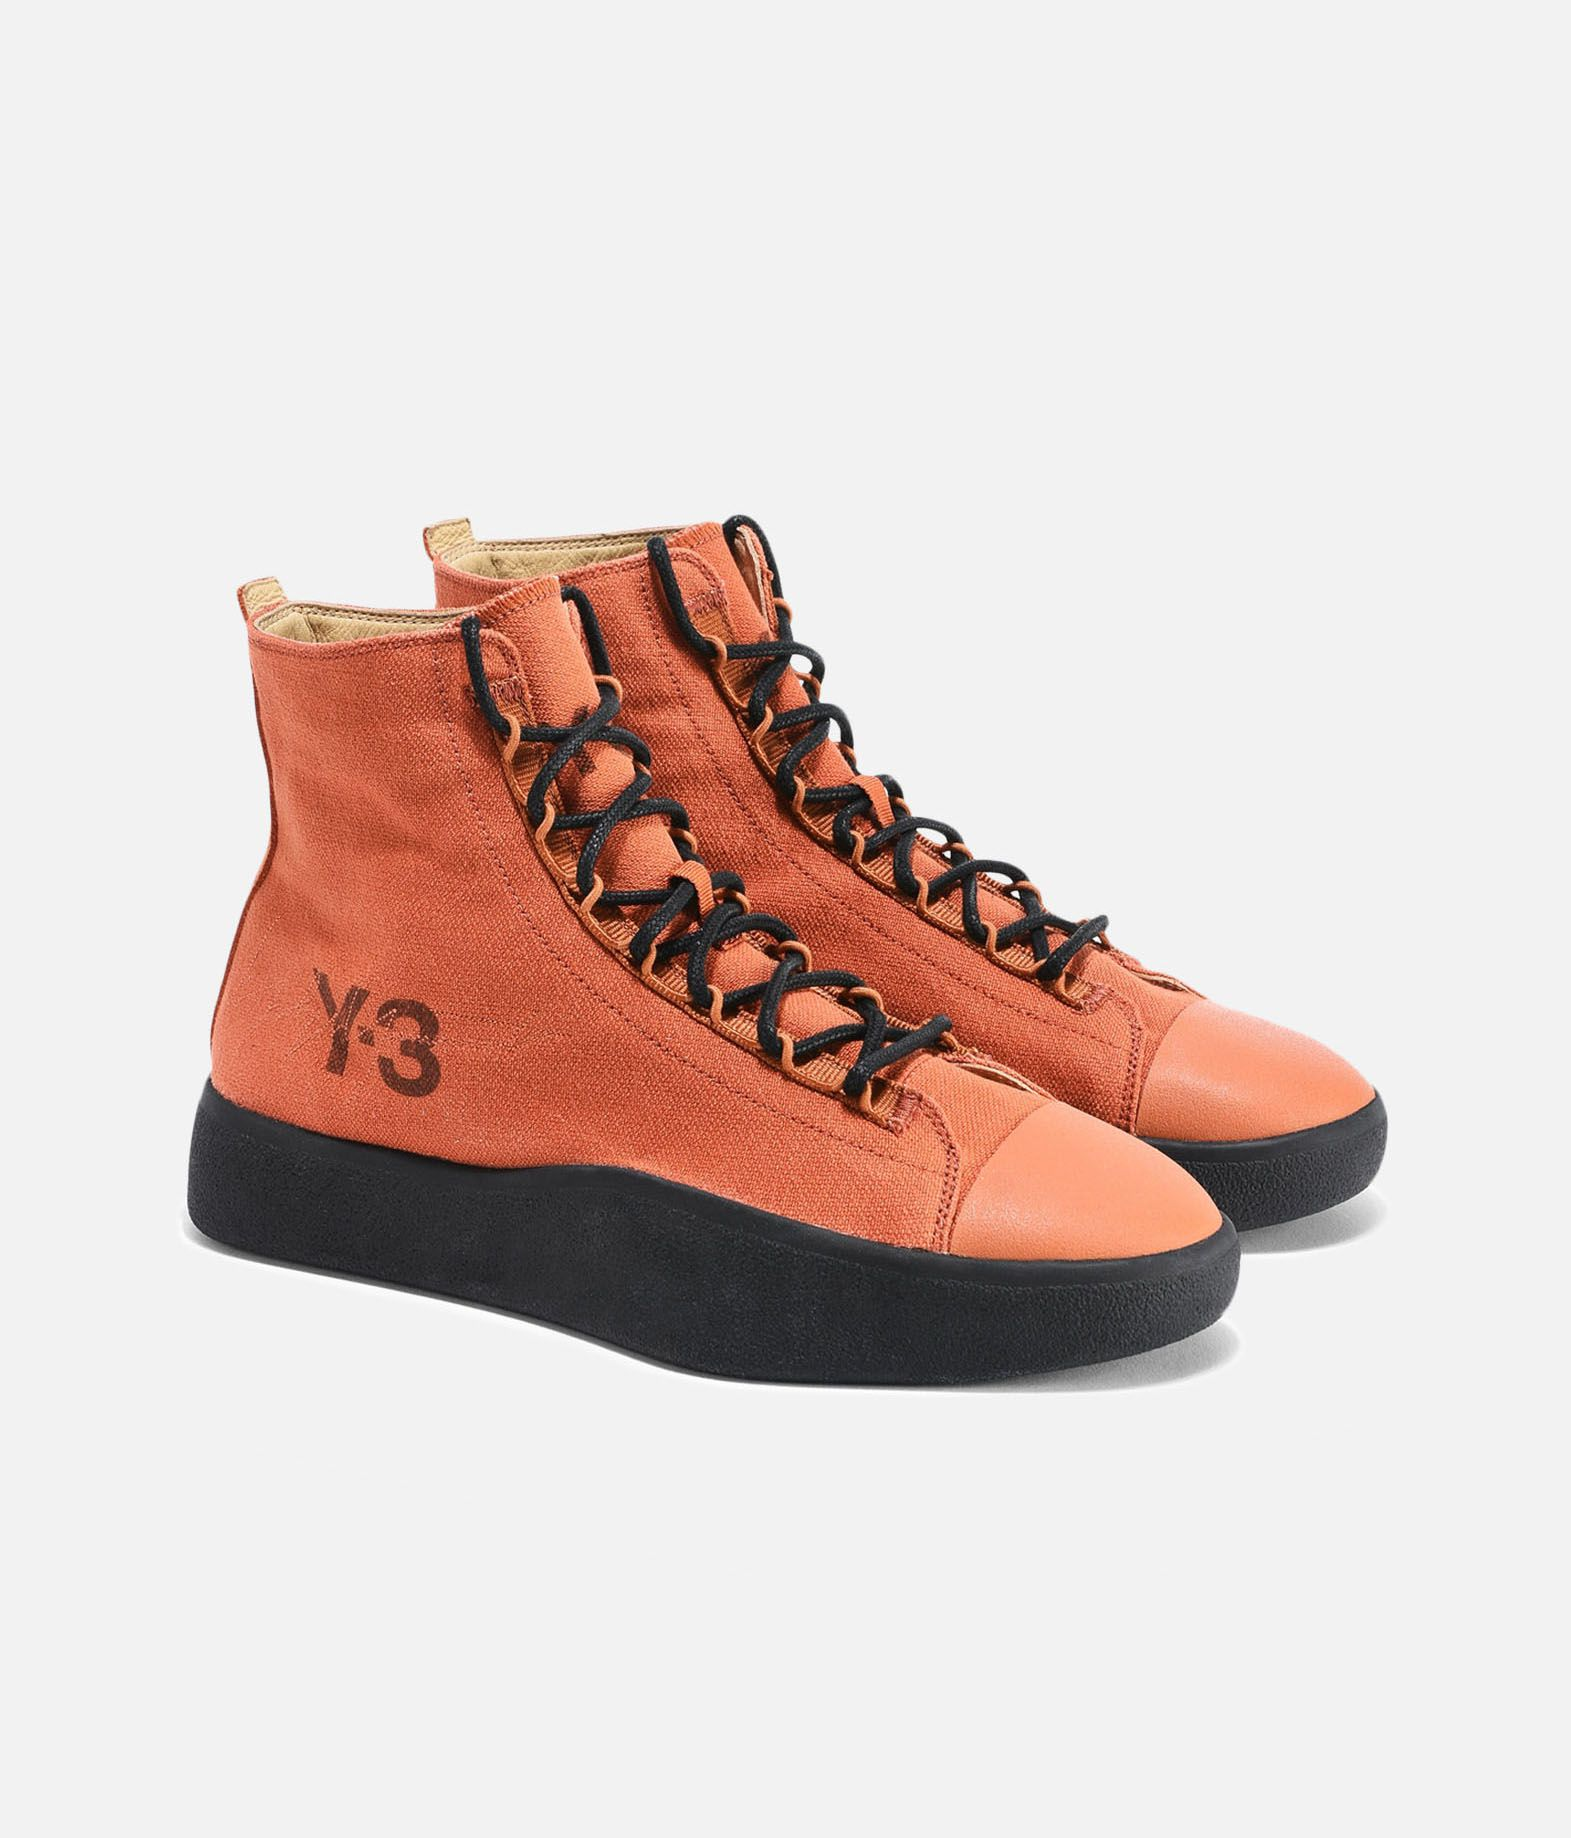 Y-3 Y-3 Bashyo II High-top sneakers E r